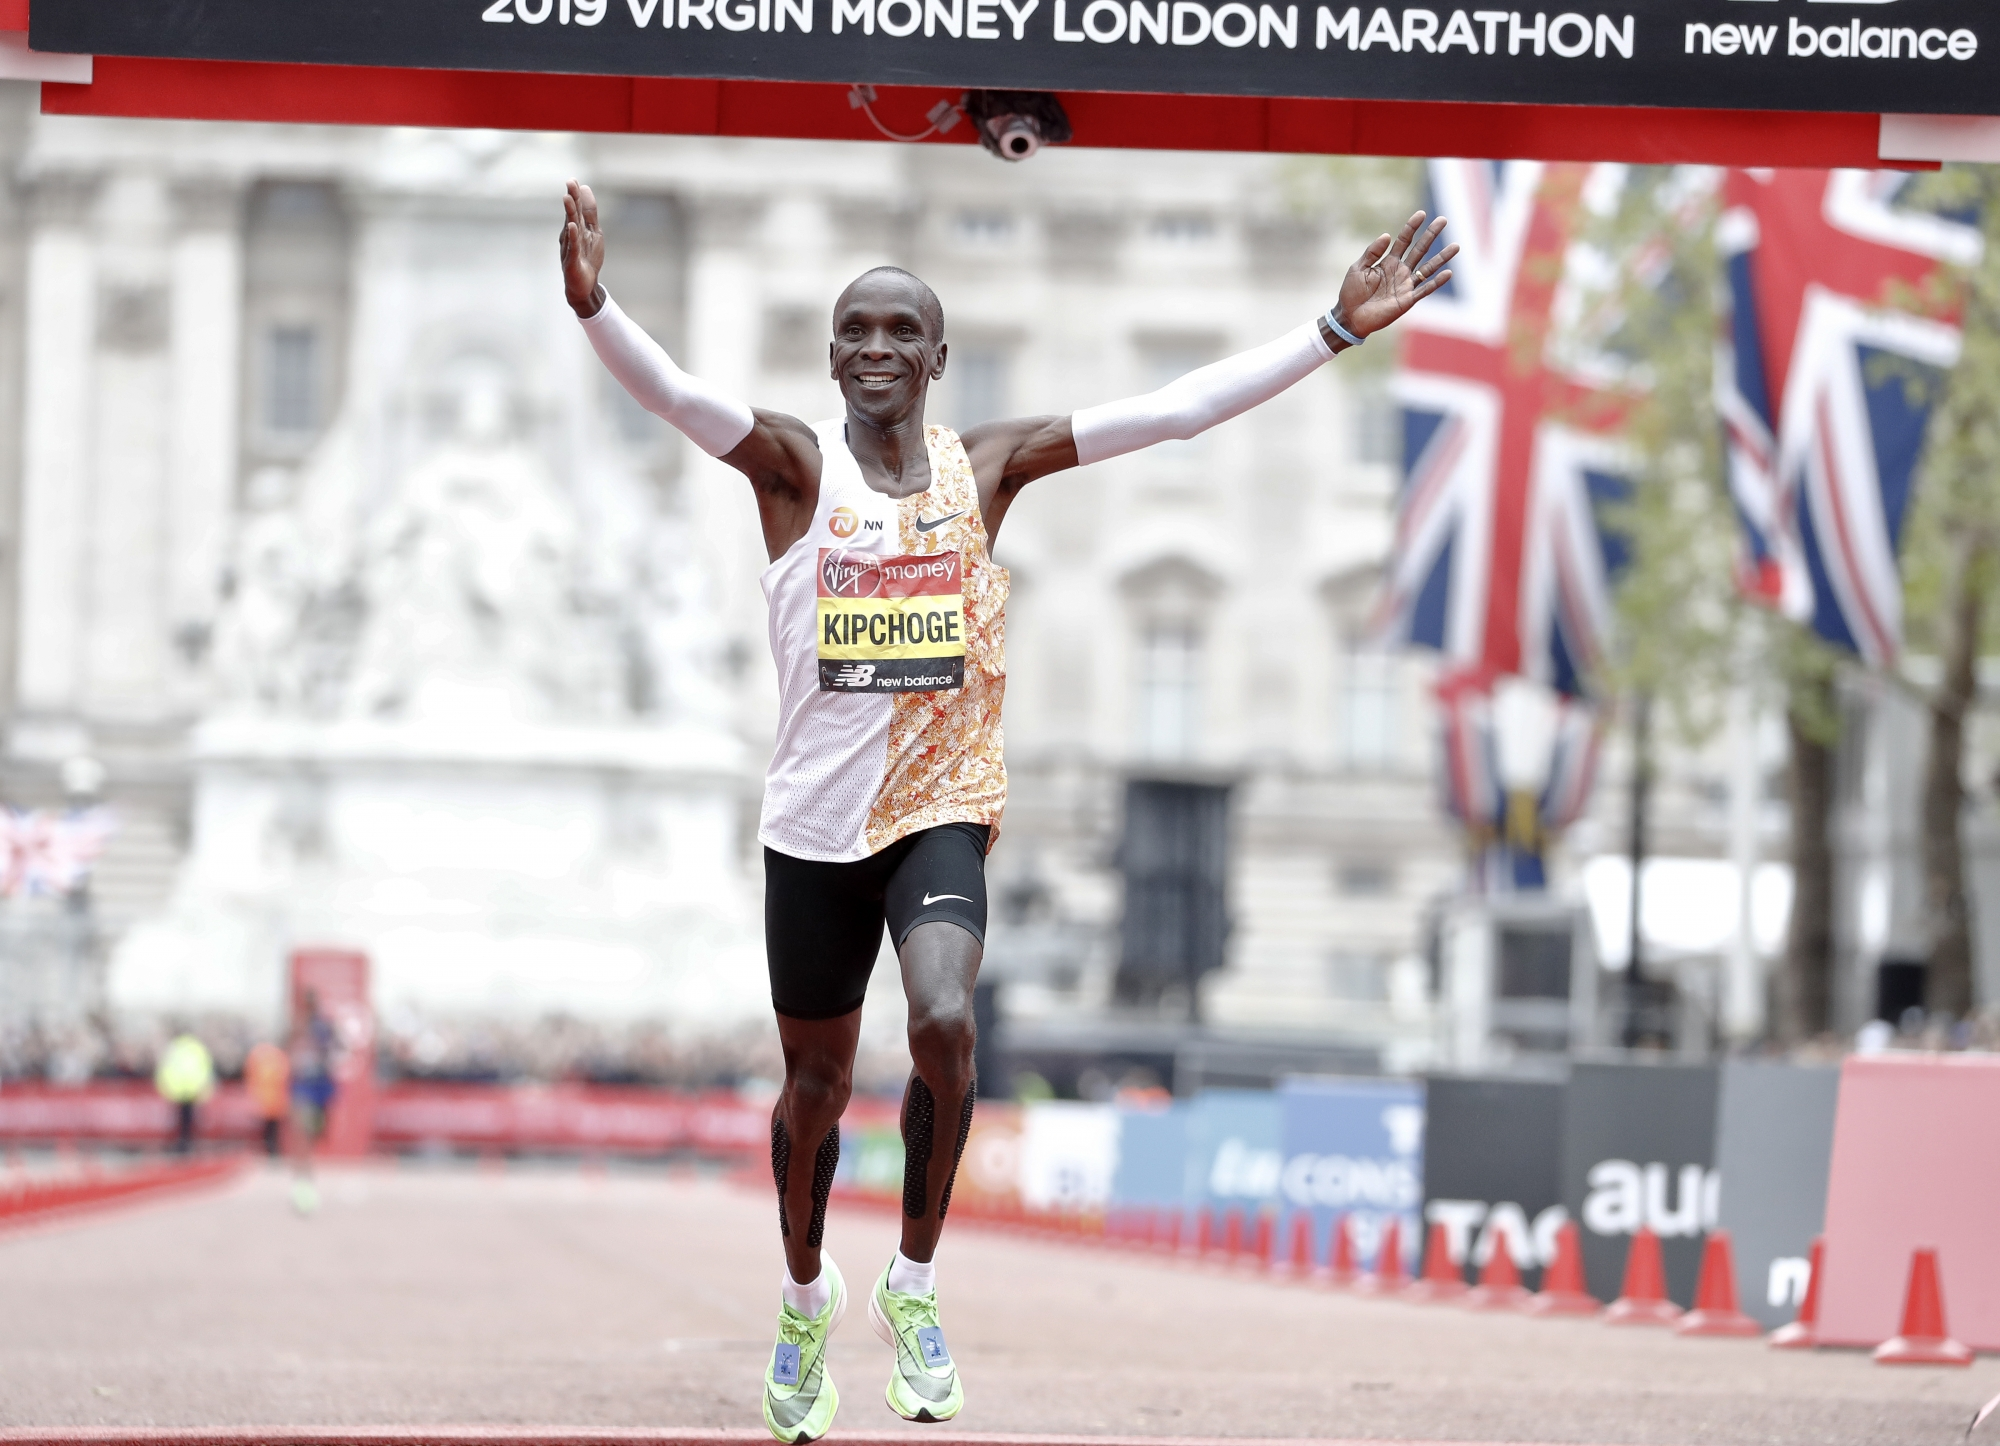 Kipchoge Targets London For Attempt At Sub 2-hour Marathon